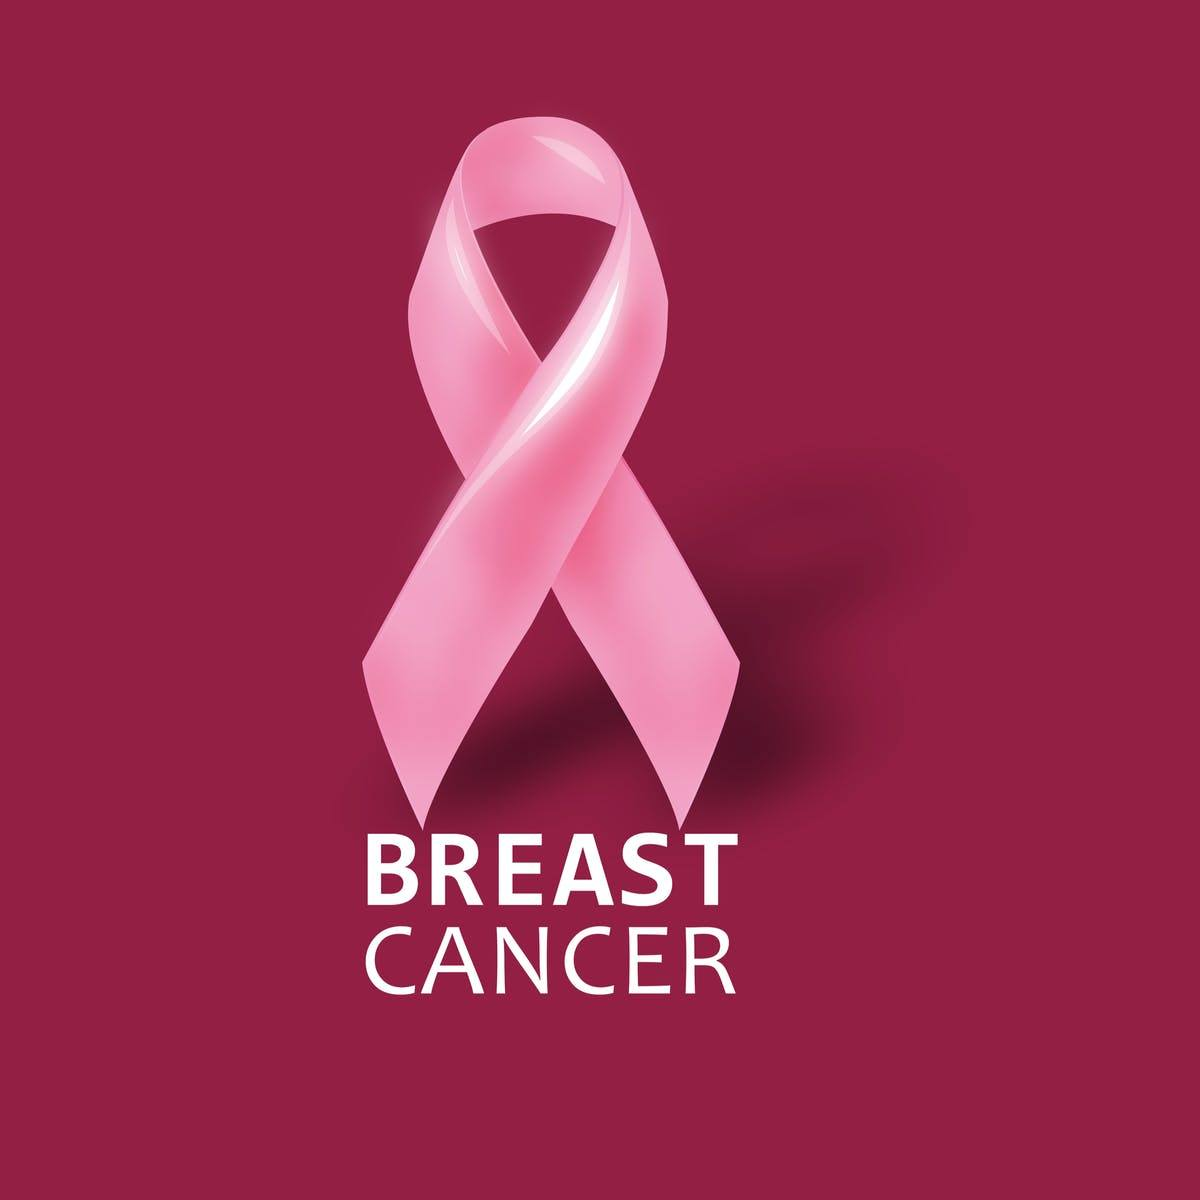 Breast cancer icd 10